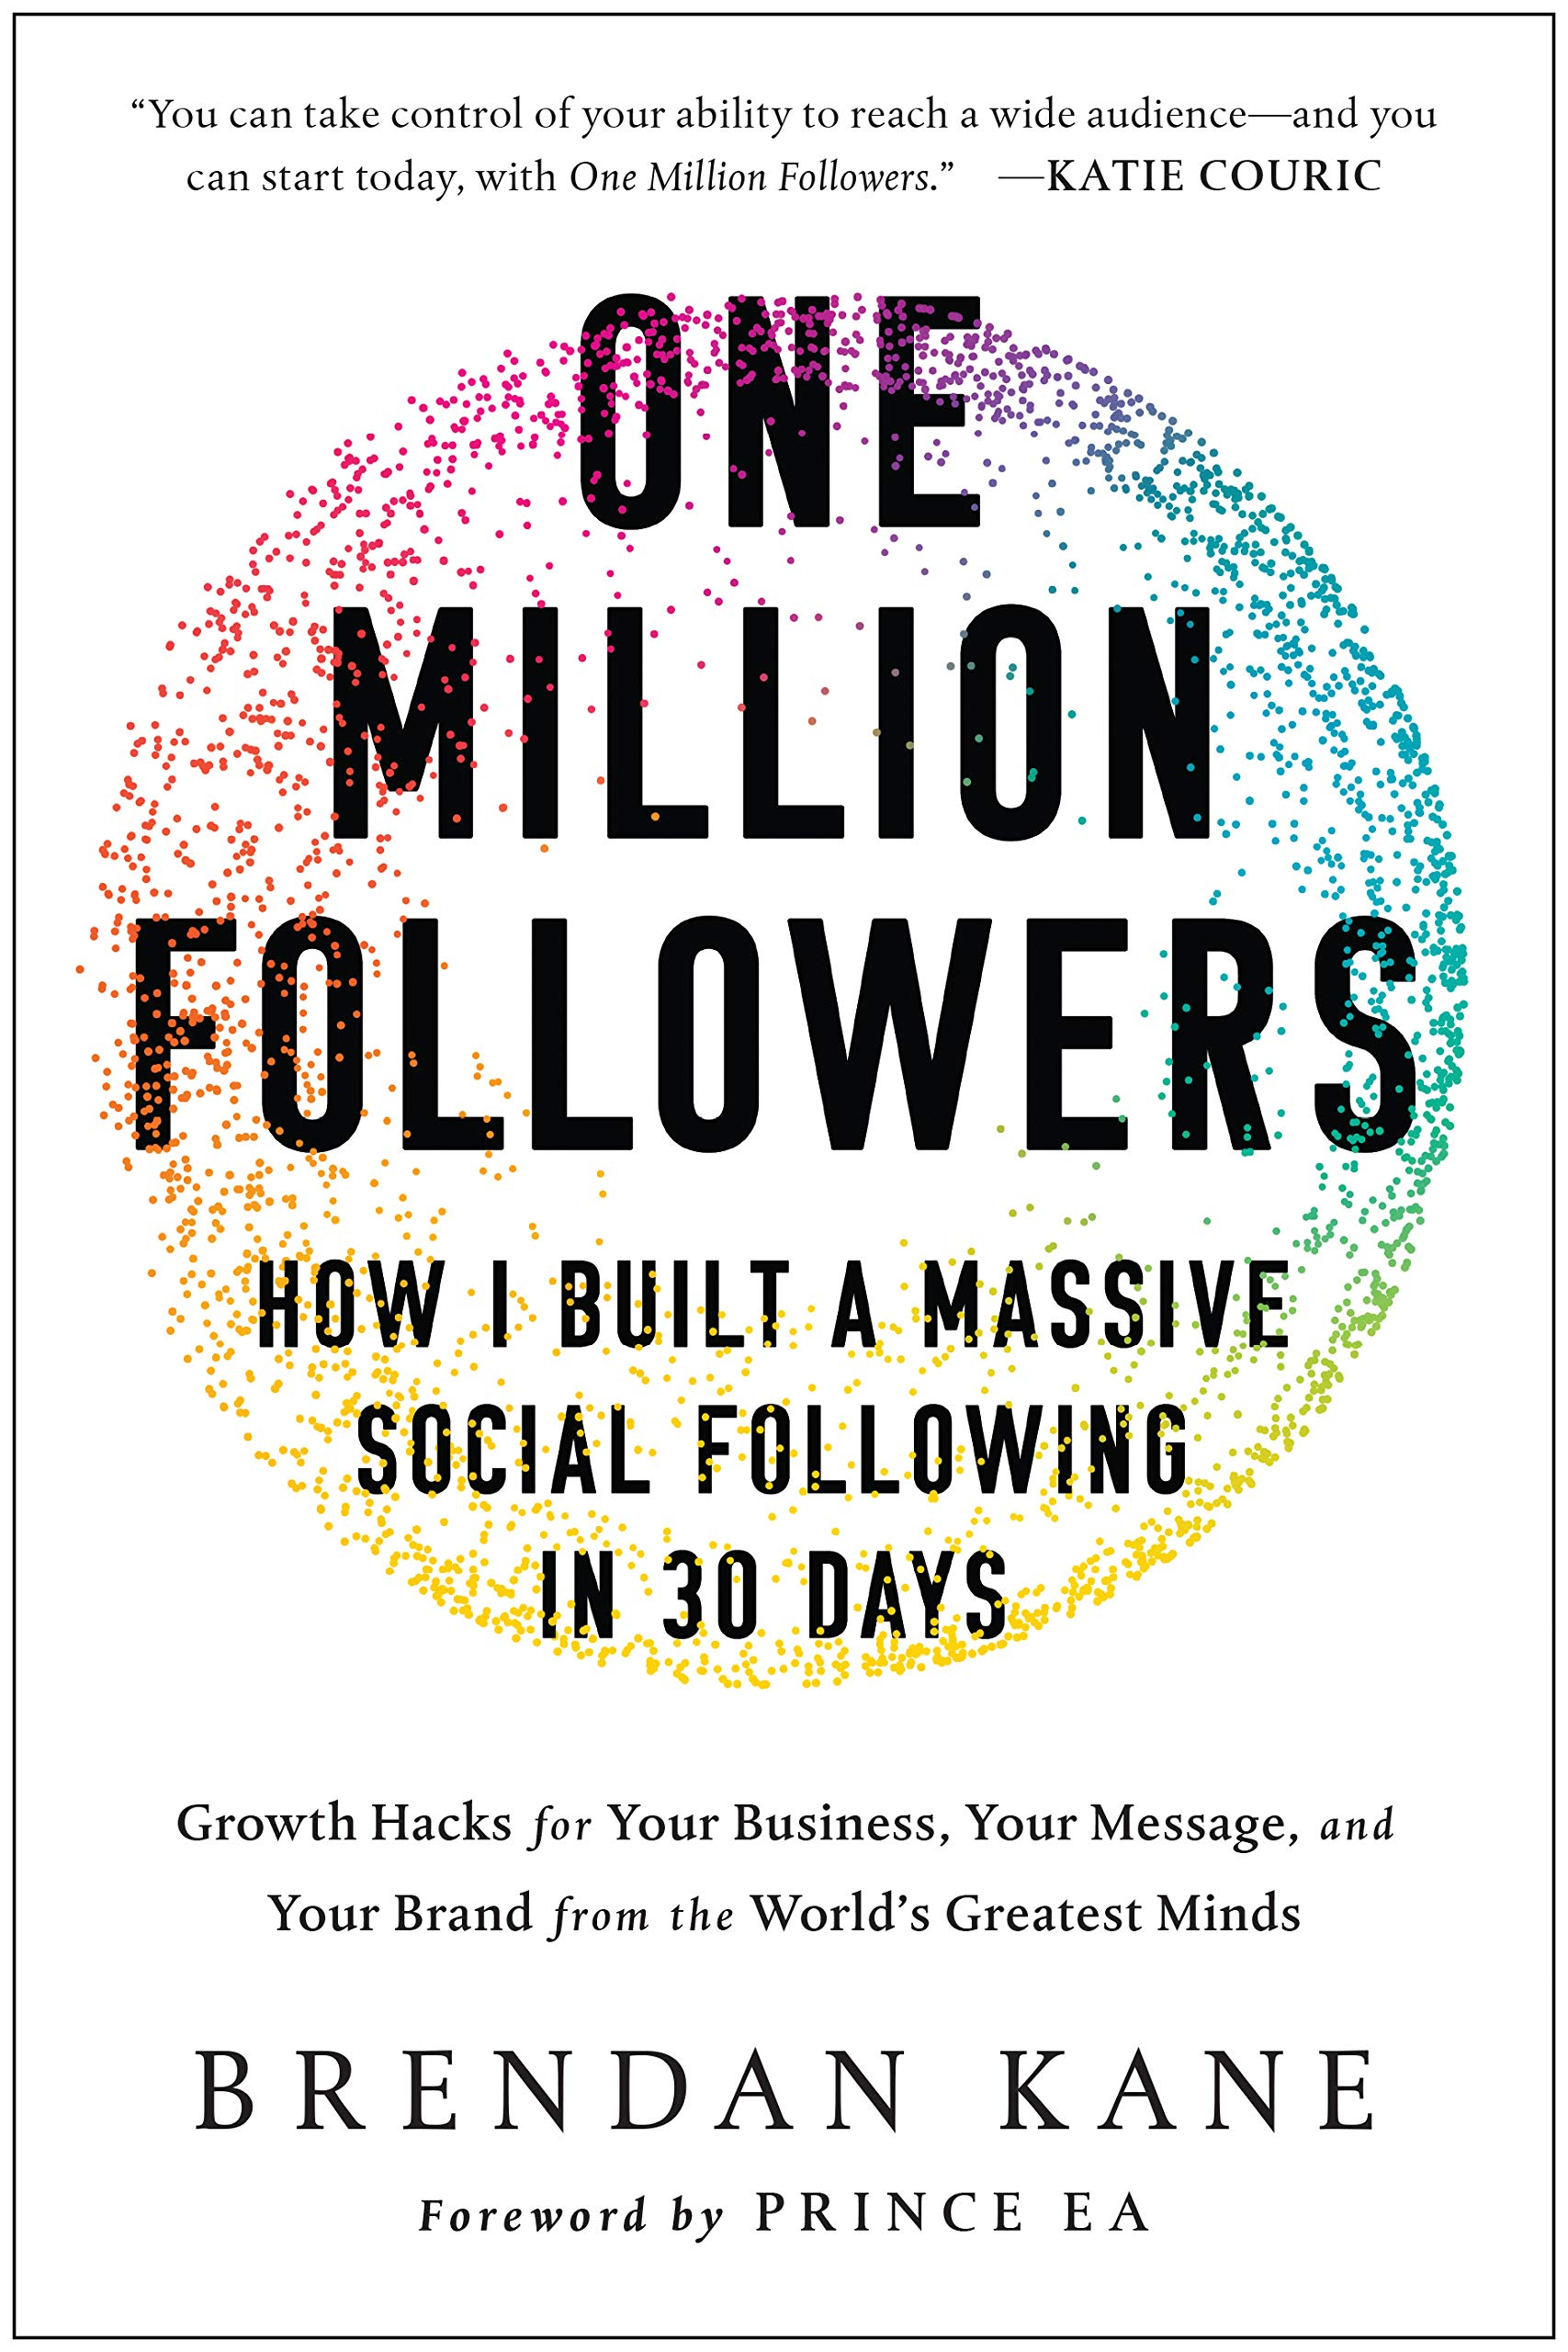 30 days of instagram content for musicians social media marketing quotes social media marketing strategy facebook instagram music One Million Followers How I Built A Massive Social Following In 30 Days Kane Brendan 9781946885371 Amazon Com Books